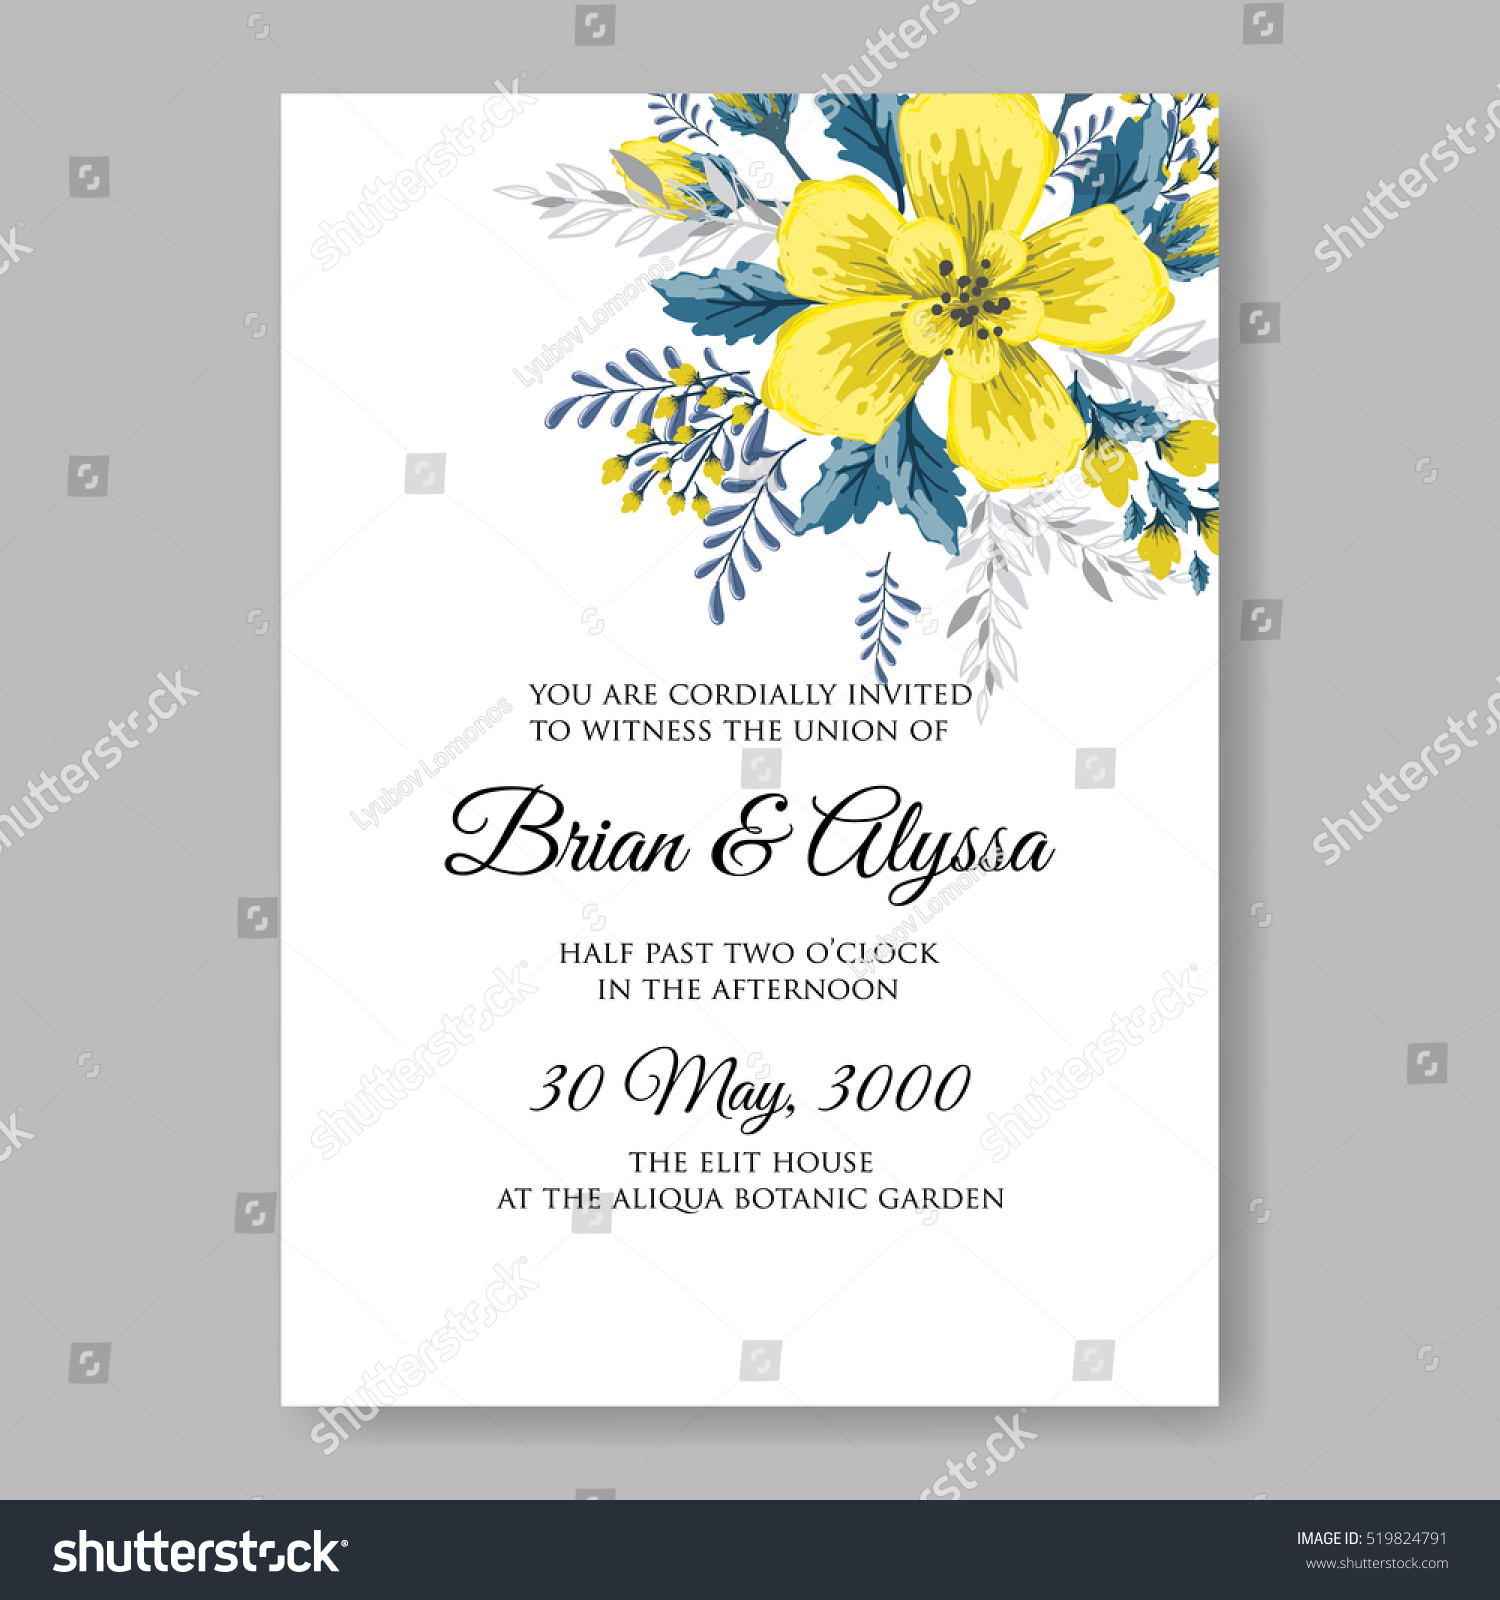 Wedding Invitation Card Abstract Yellow Floral Stock Vector (Royalty ...